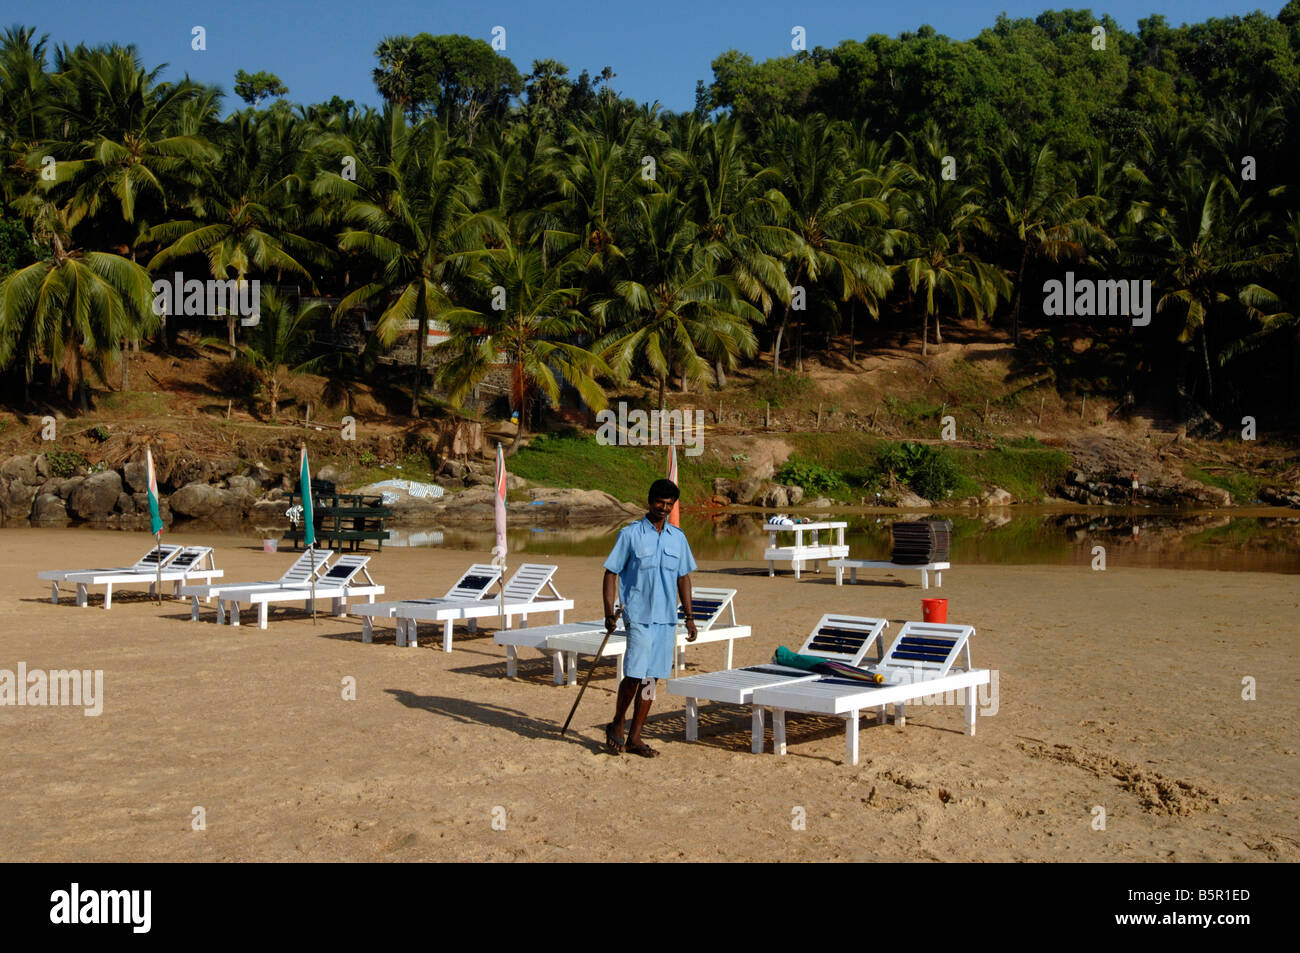 A hotel member of staff prepares loungers for tourists staying in the resort amongst the coconut trees at Chowara - Stock Image